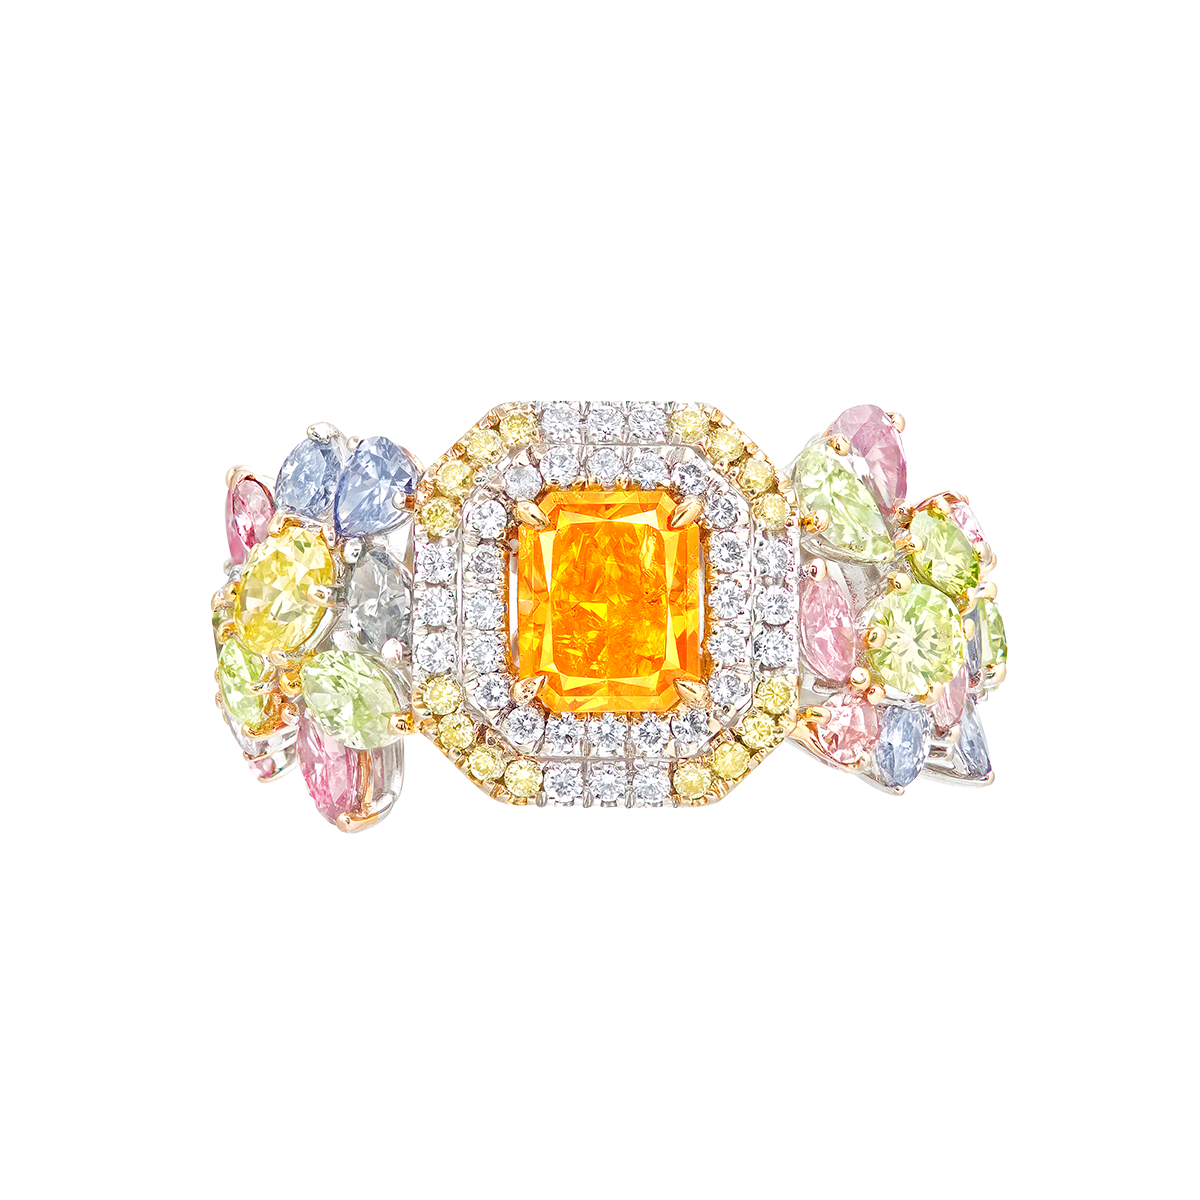 GIA 1.12克拉 艷彩橘彩鑽鑽石戒